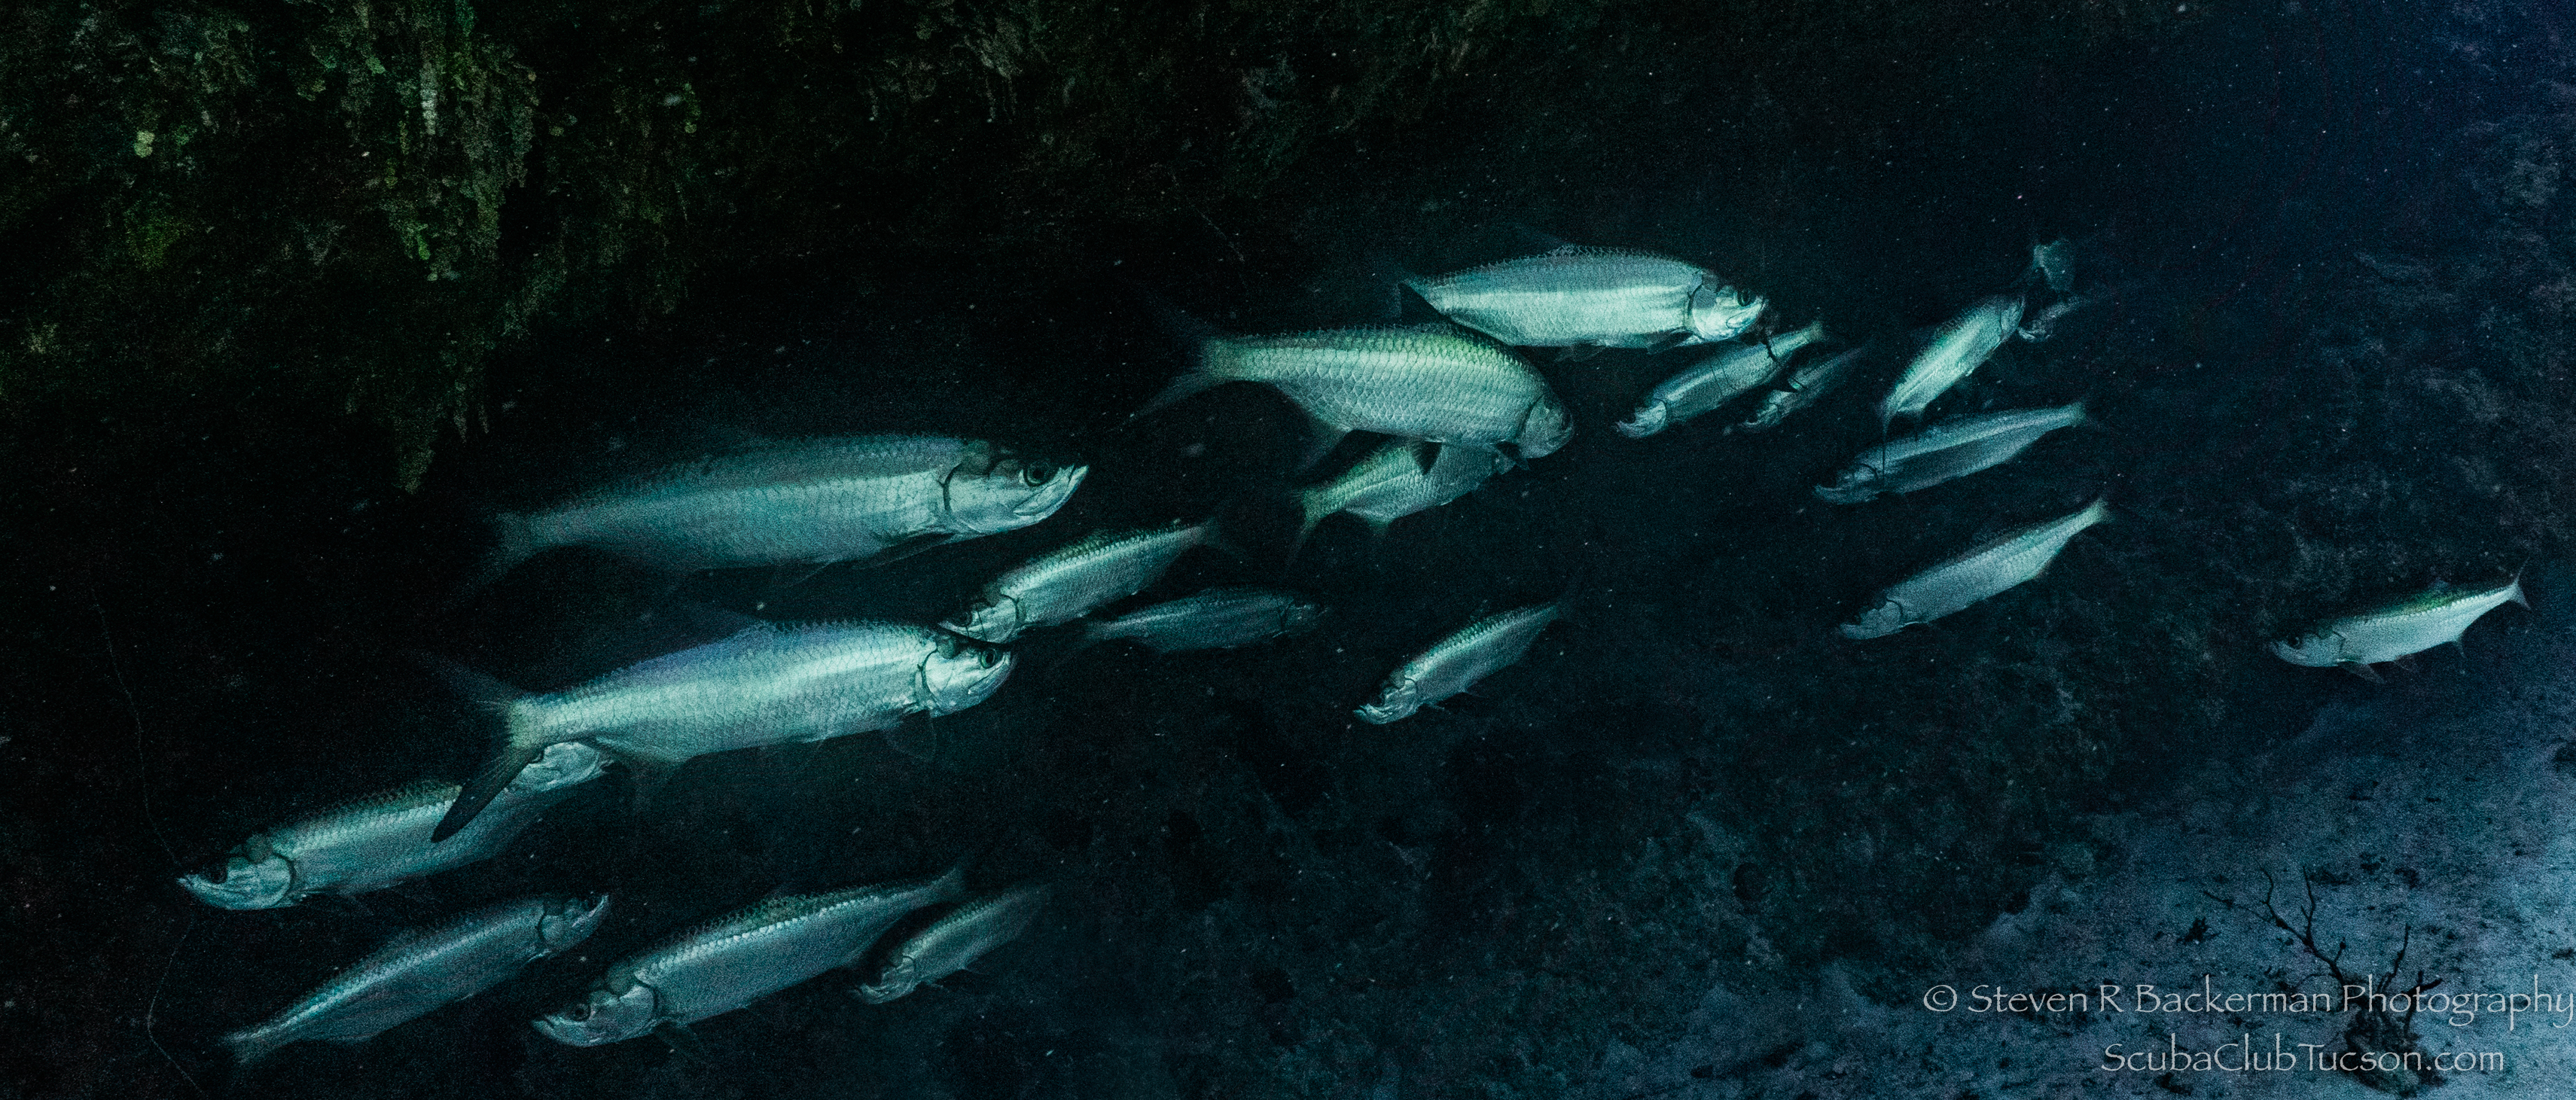 School-of-Tarpon-4626